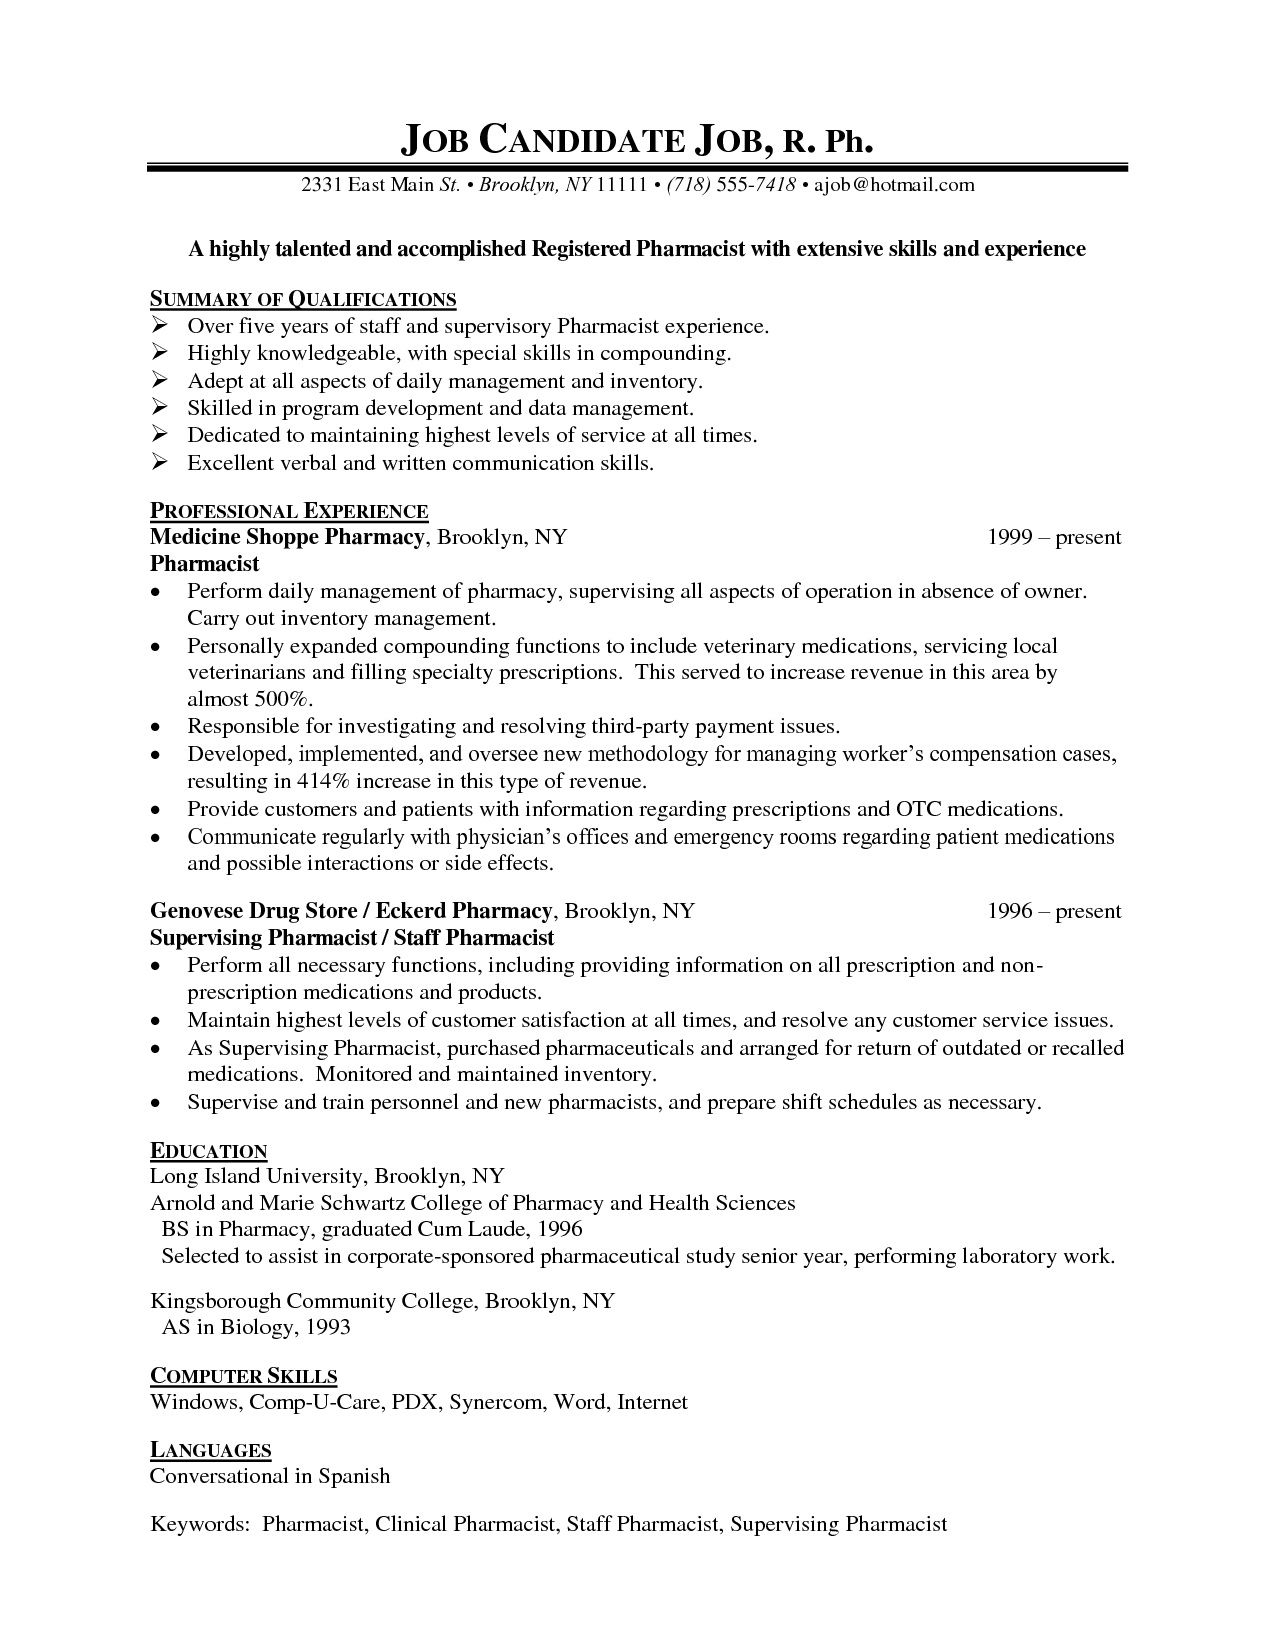 Cashier Duties Resume Pharmacist Resume Examples  Httptopresumepharmacist